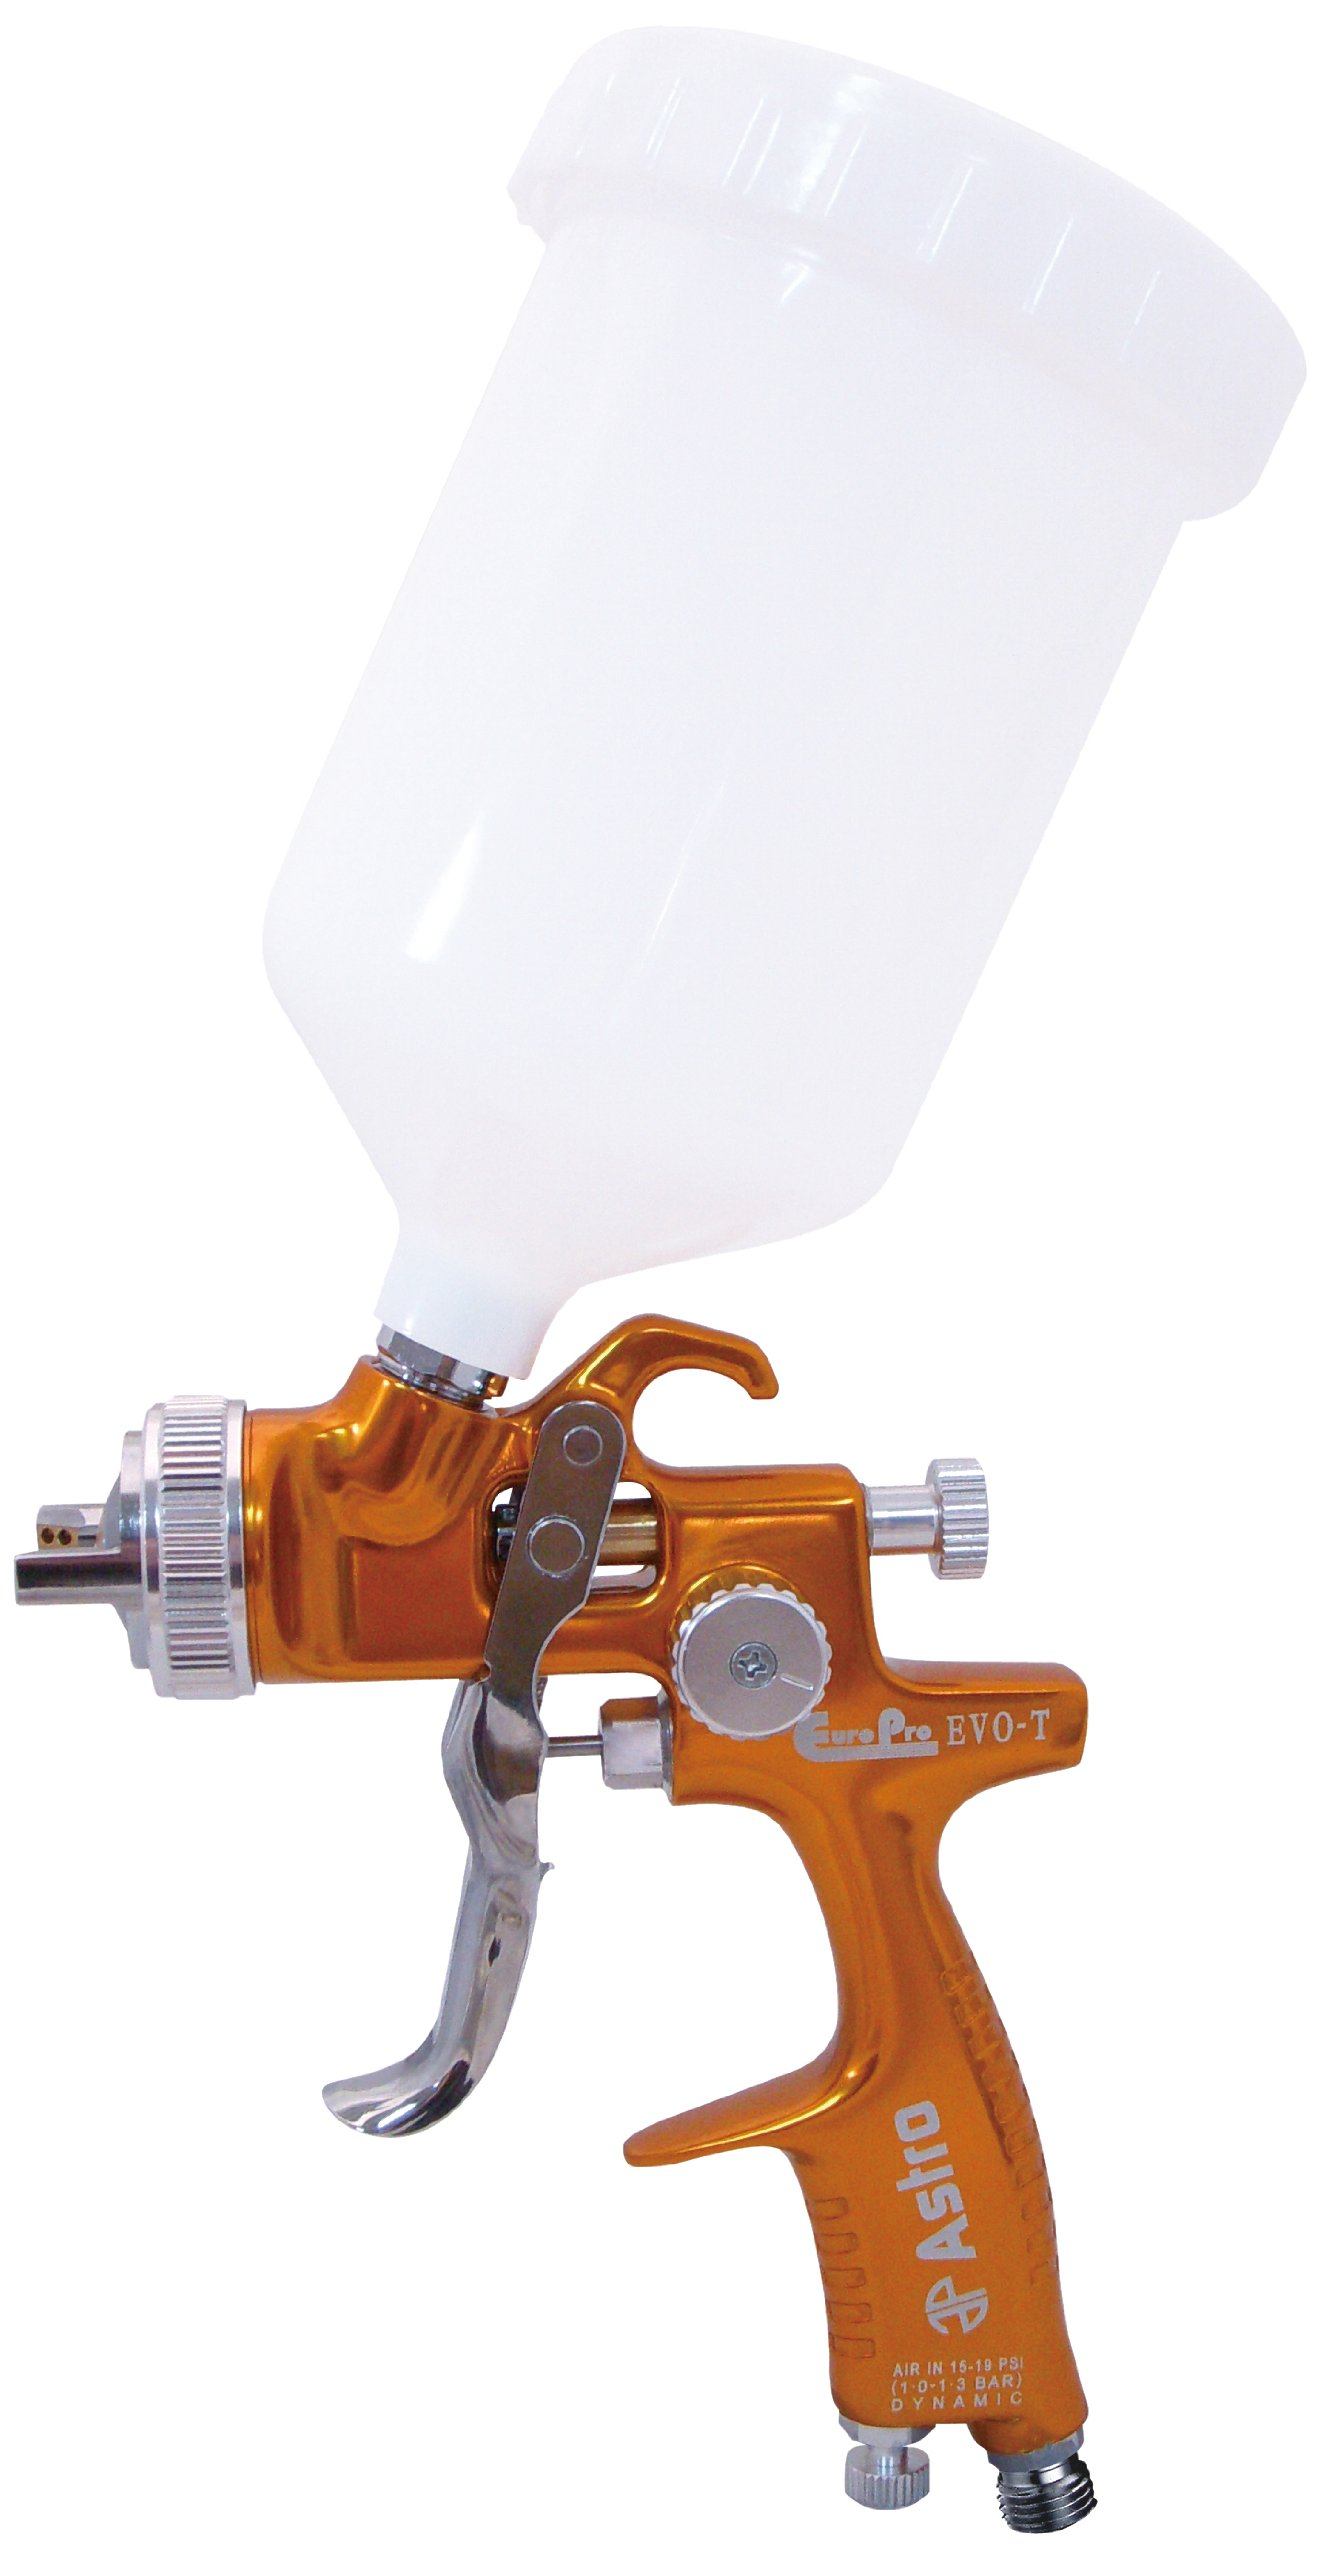 Astro EVOT14 EuroPro Forged LVLP Spray Gun with 1.4mm Nozzle and Plastic Cup